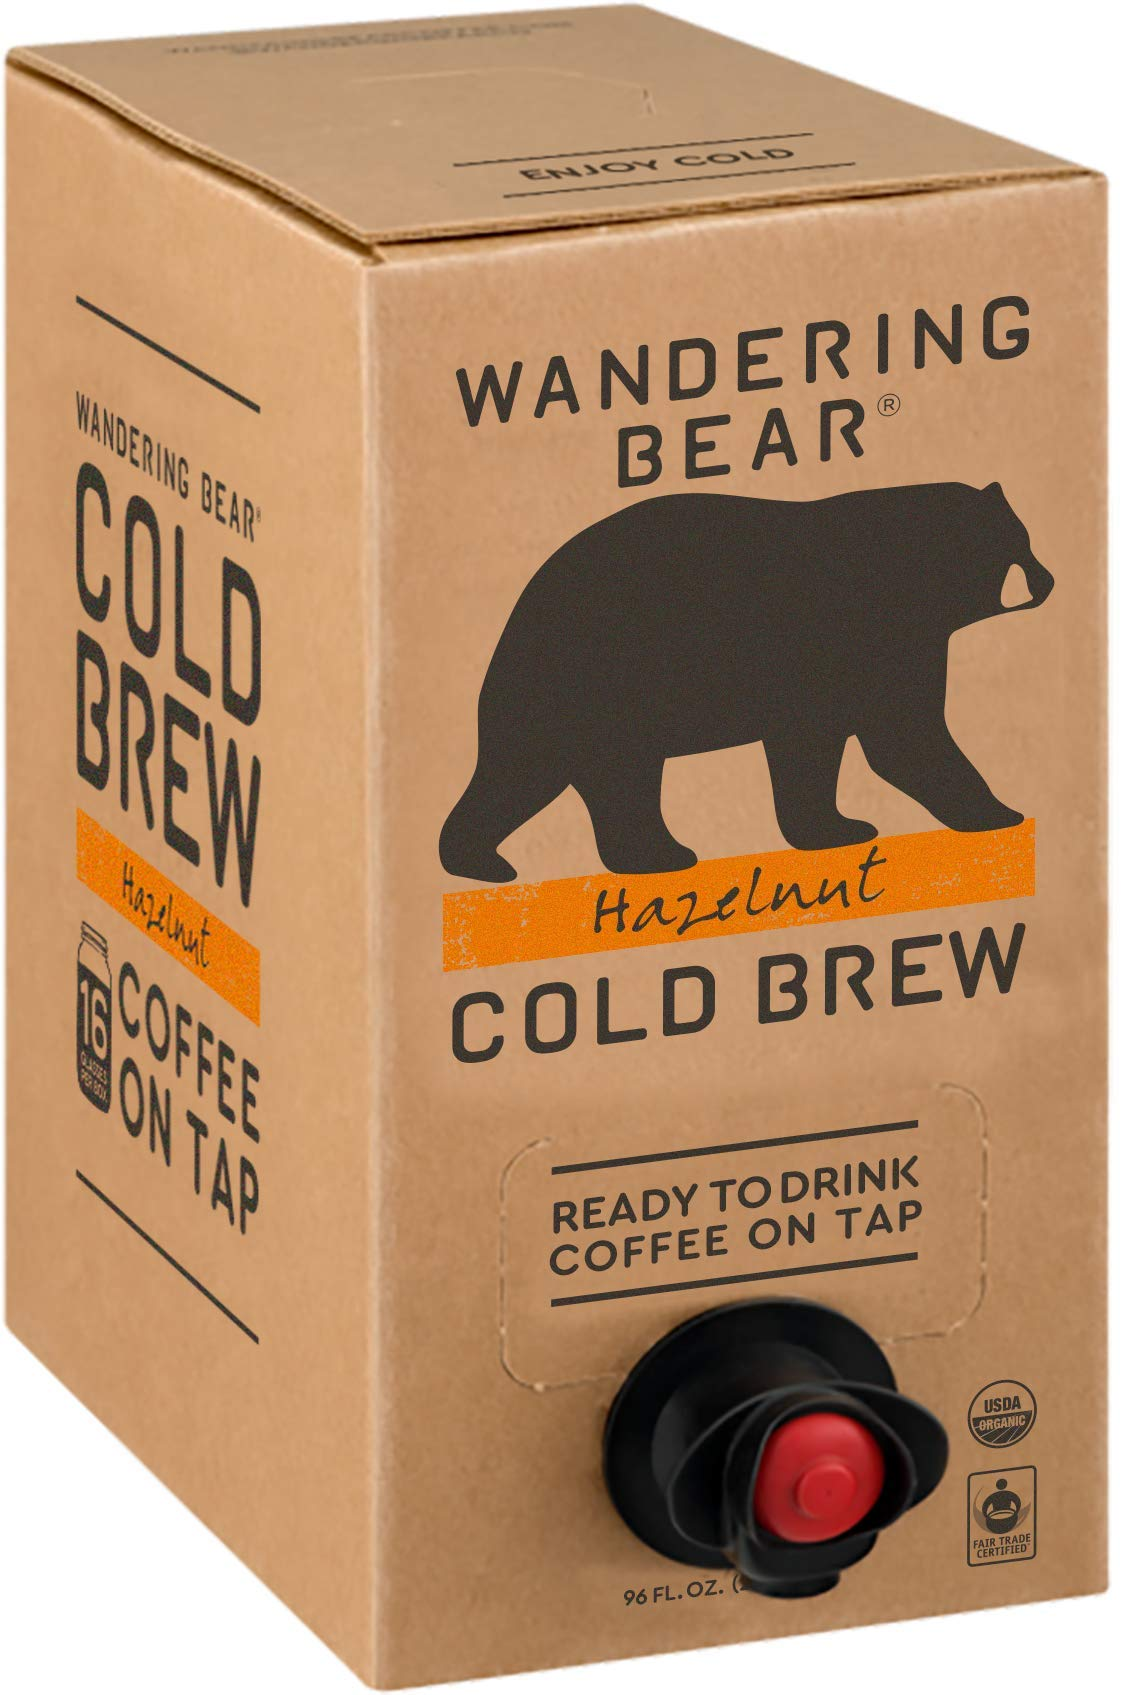 Wandering Bear Organic Cold Brew Coffee On Tap, Hazelnut, No Sugar, Always Fresh and Ready to Drink, Not a Concentrate, 96 fl oz by Wandering Bear